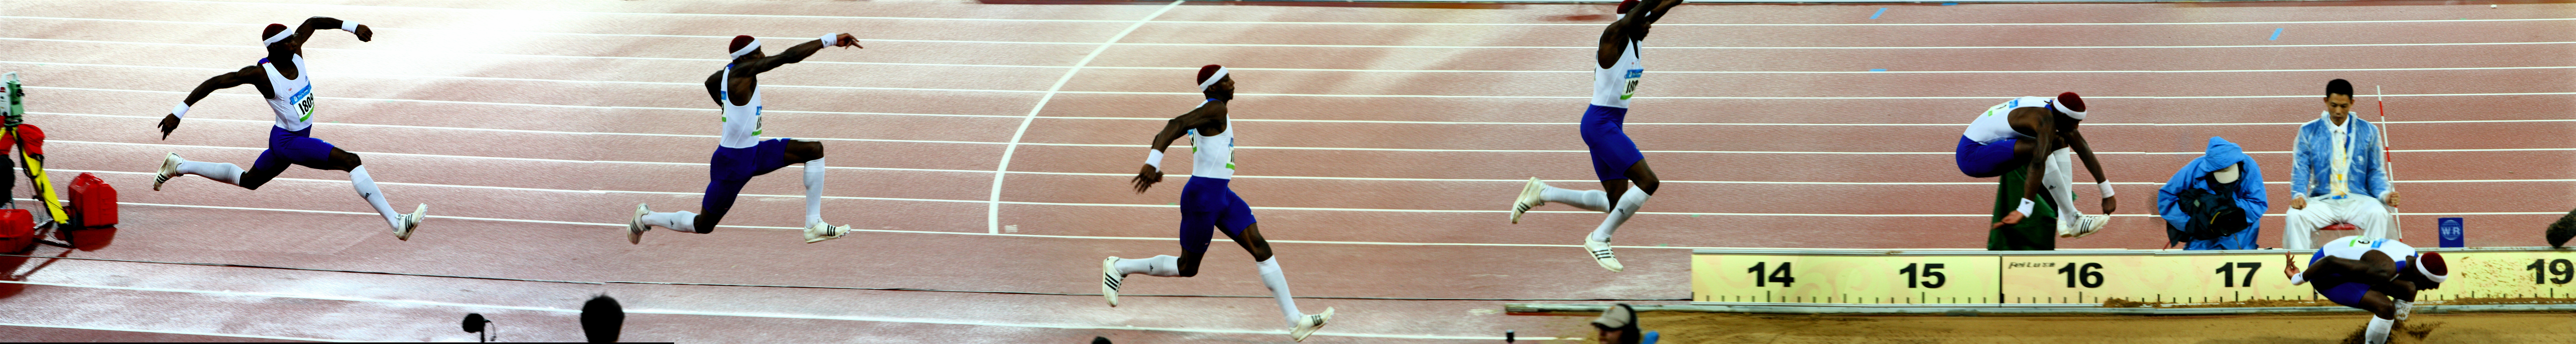 Beijing Olympics Men's Triple Jump — by Richard Giles of Perth, Australia